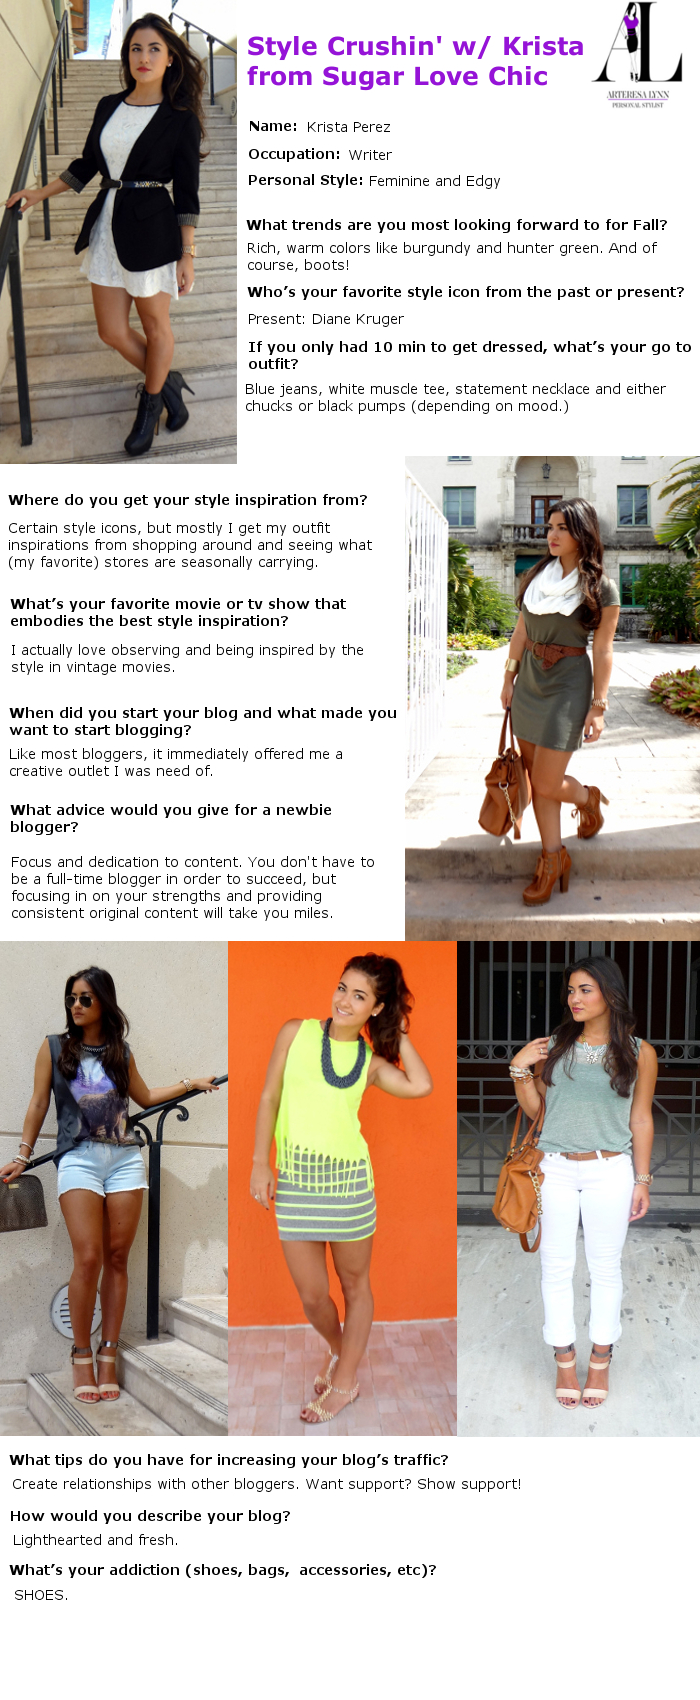 style crush, sugar love chic, krista perez, style interview